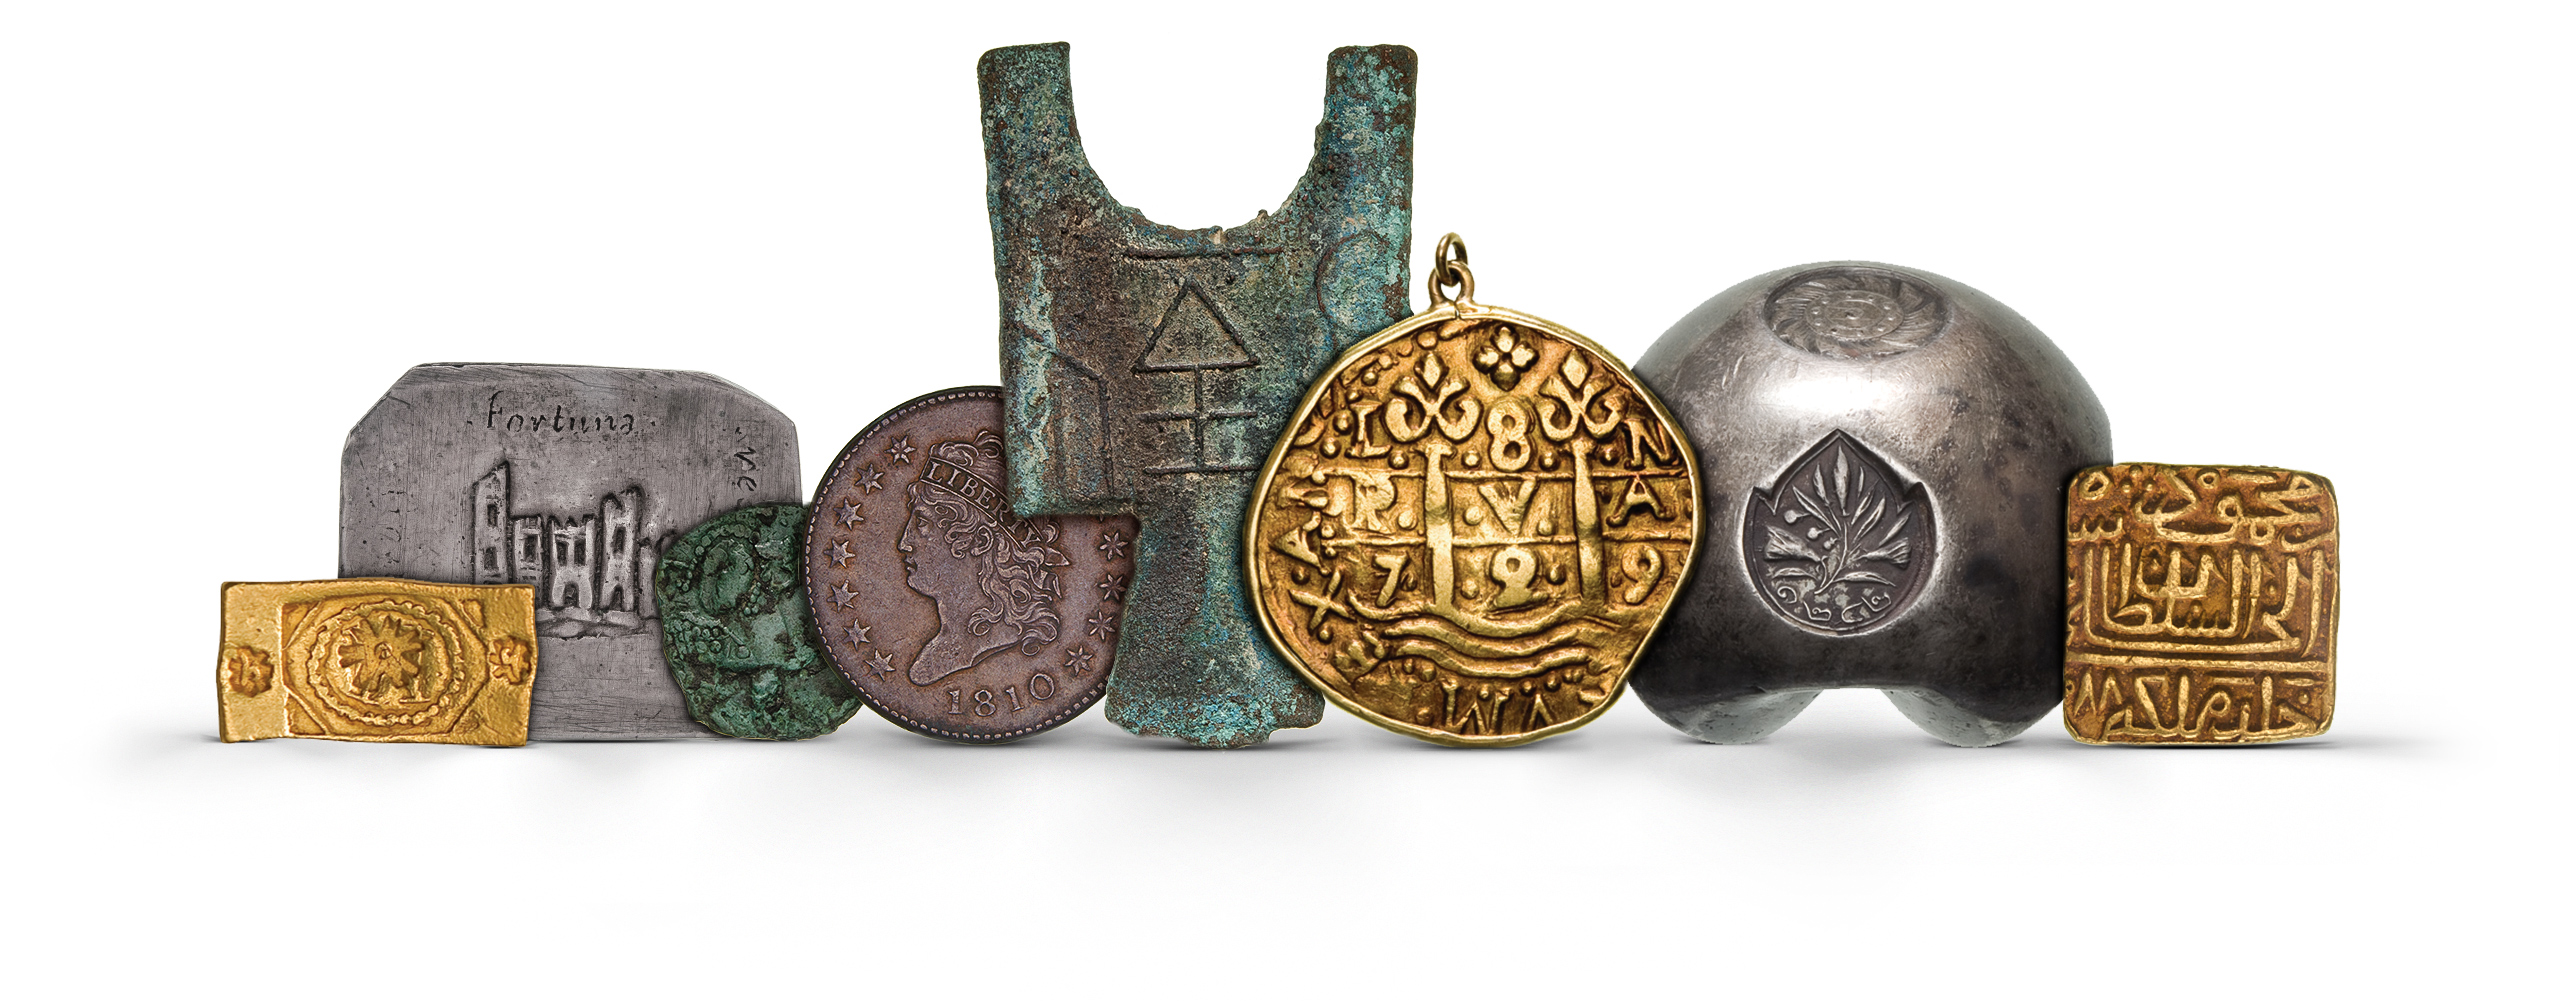 Photography of world modern Coins in gold, silver and bronze and currency from several periods, photographed for Morton and Eden in association with Sotheby's sold in auction in London Photography and retouch by Maria Queralt